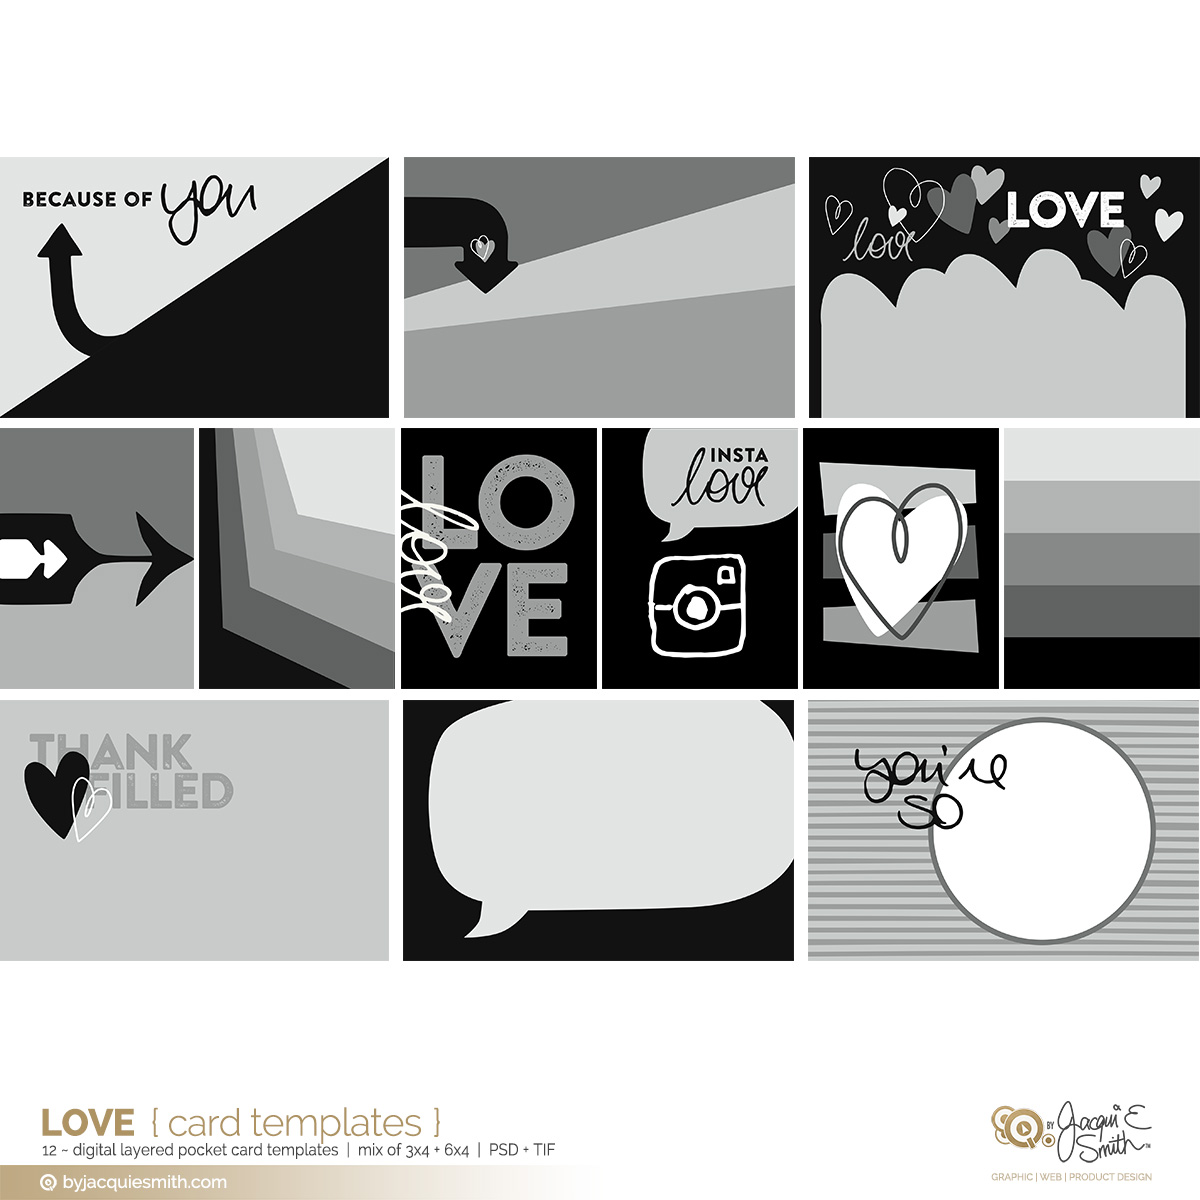 Love digital pocket card layered templates at byjacquiesmith.com